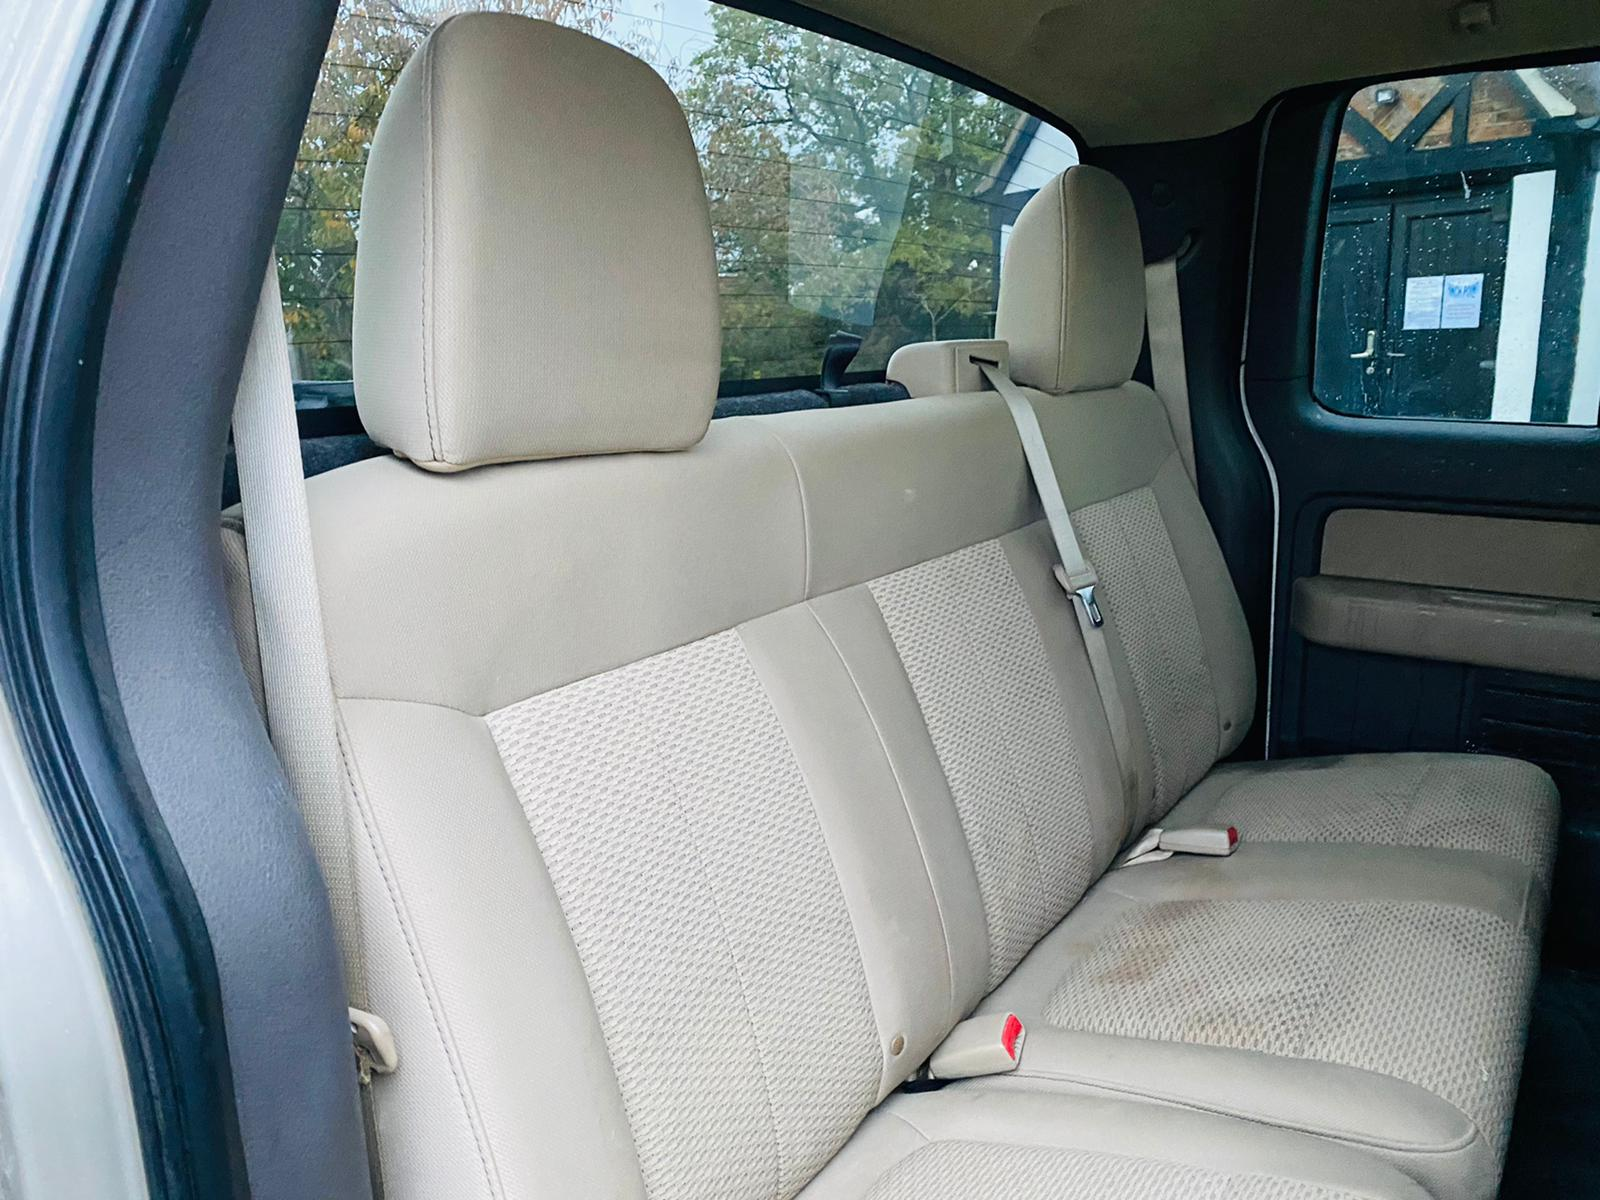 (RESERVE MET) Ford F-150 XLT 4.6L V8 Supercab - 2010 Year - 6 Seats - Fresh Imports - Image 23 of 39